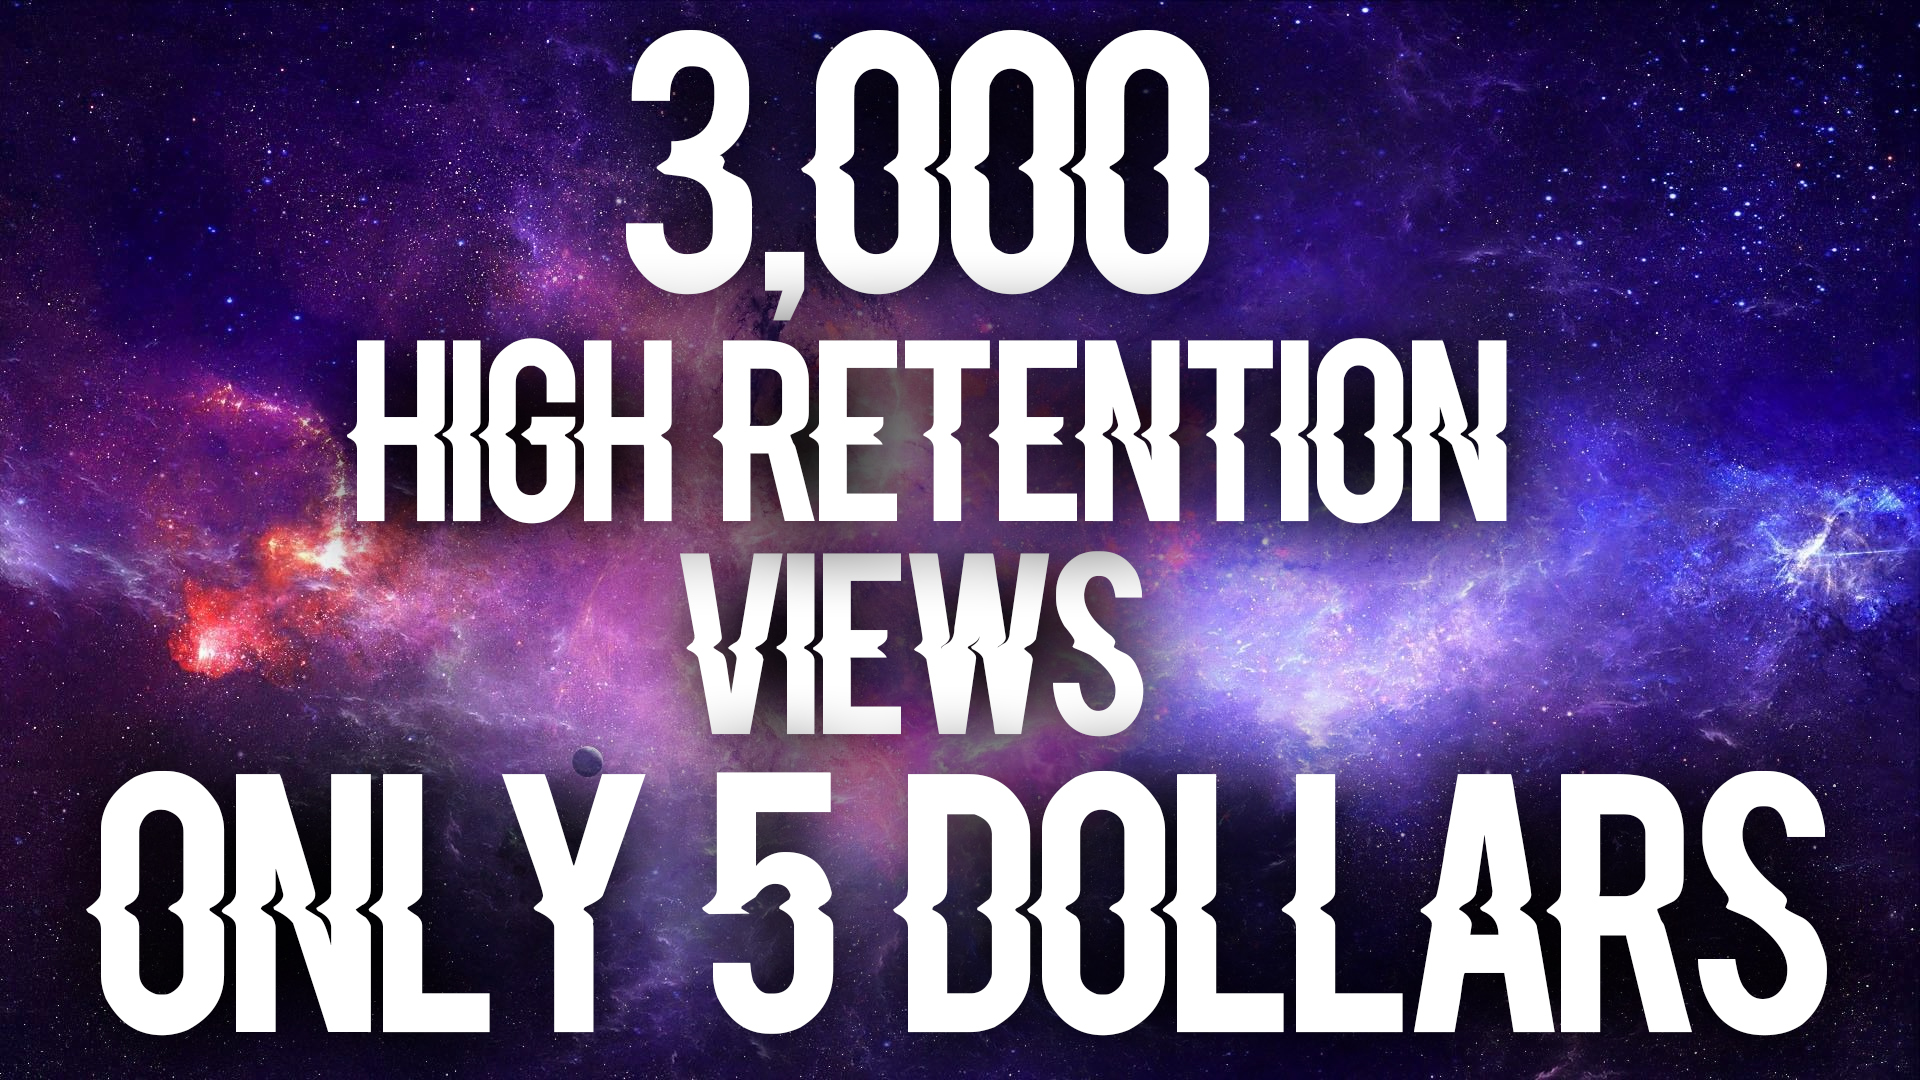 give you 3,000 retention views